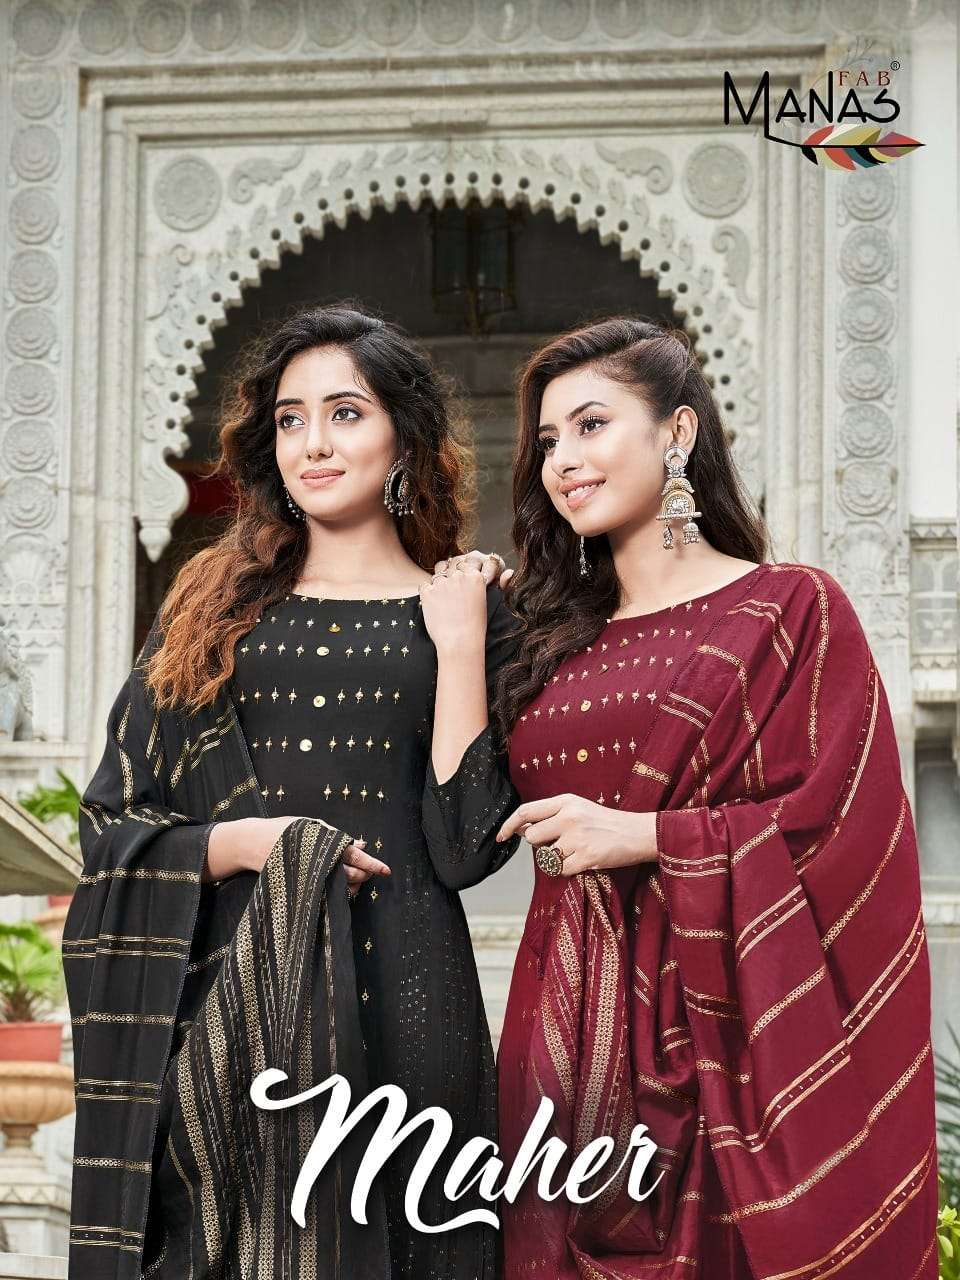 Manas Fab Meher Pure viscose Jacquard Butti Weaving Sequence Hand Work Kurti With Bottom dupatta collection